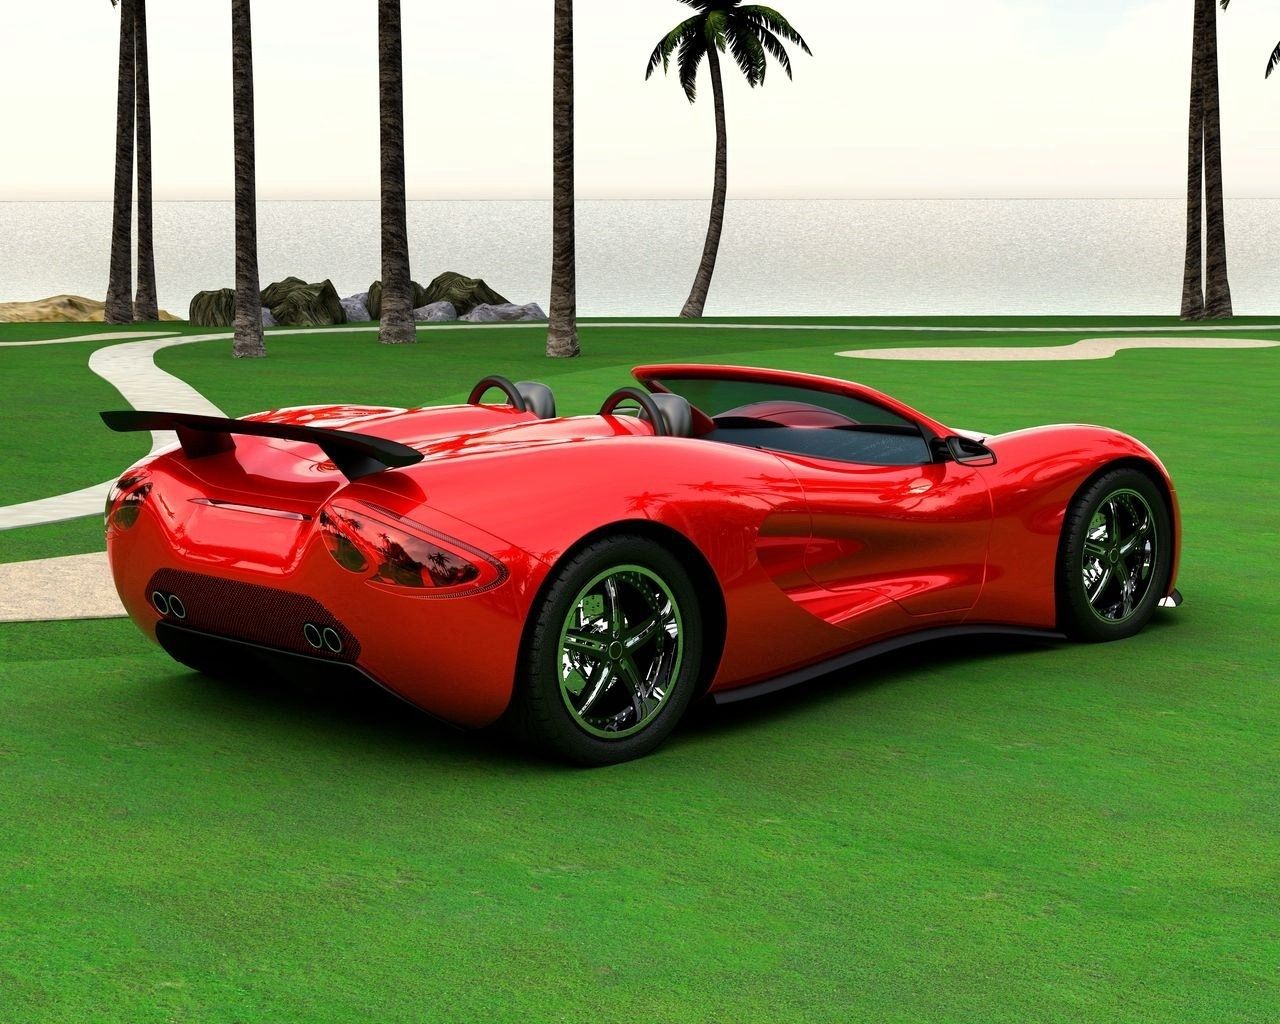 Sports Cars Pictures Wallpapers: Wallpapers: Sports Car Wallpapers